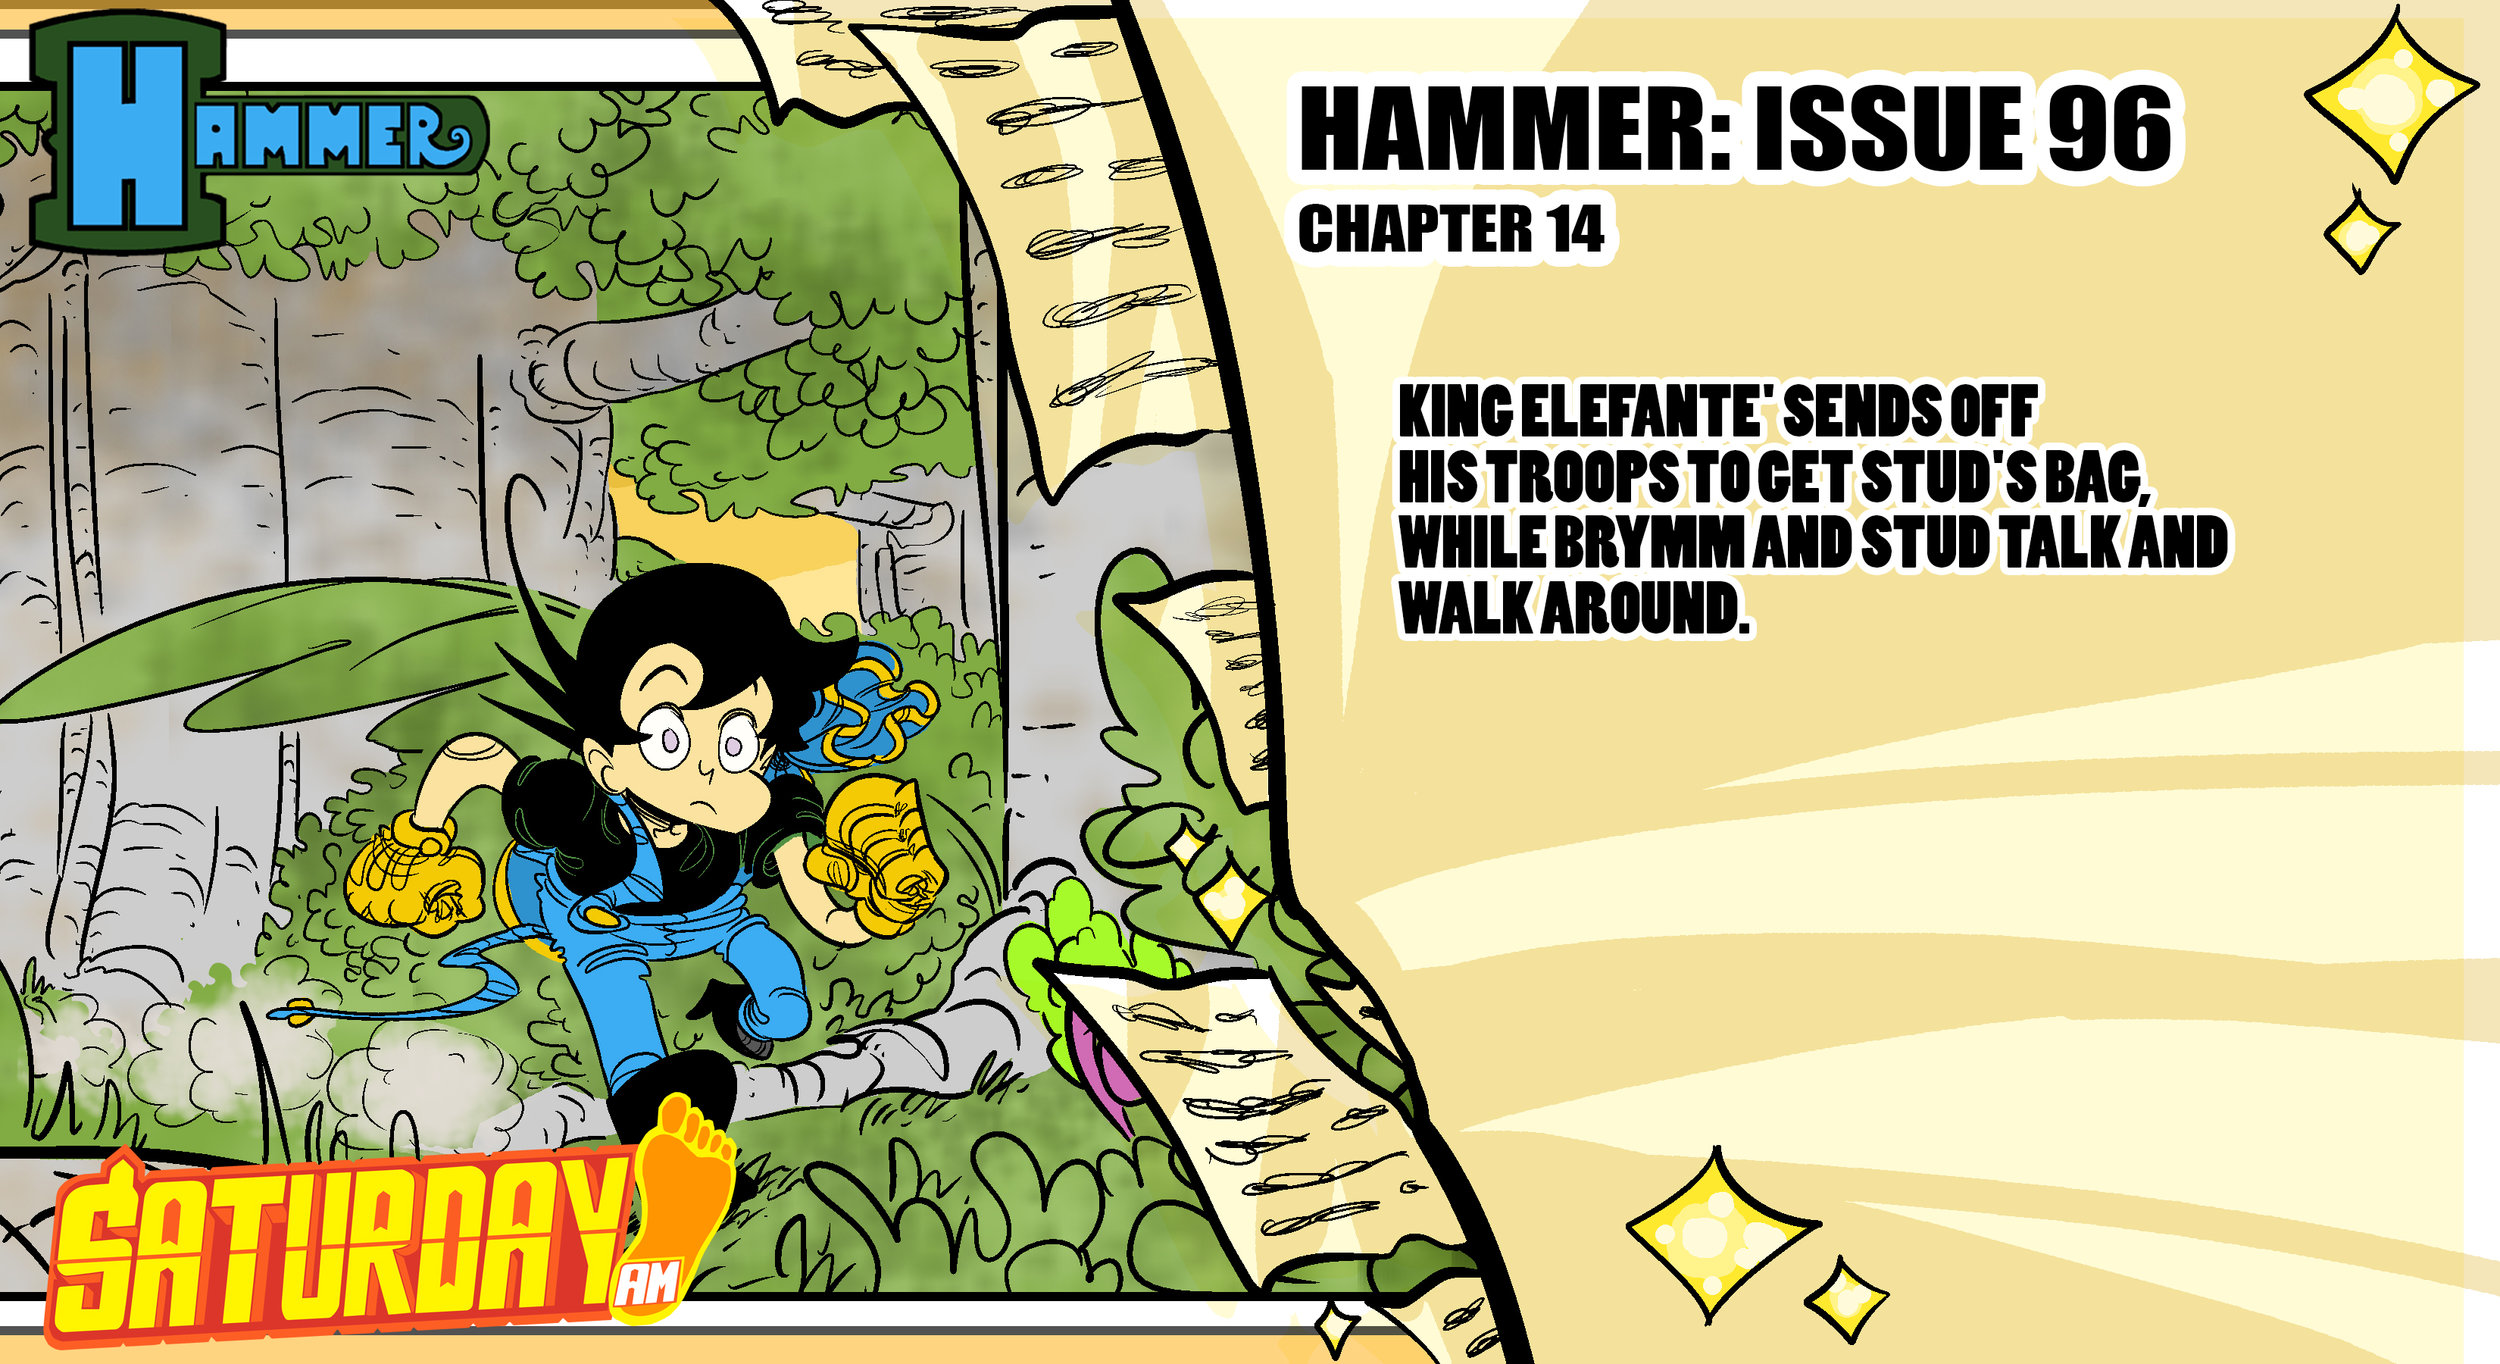 HAMMER WEBSITE_LATEST ISSUE GRAPHIC #96.jpg